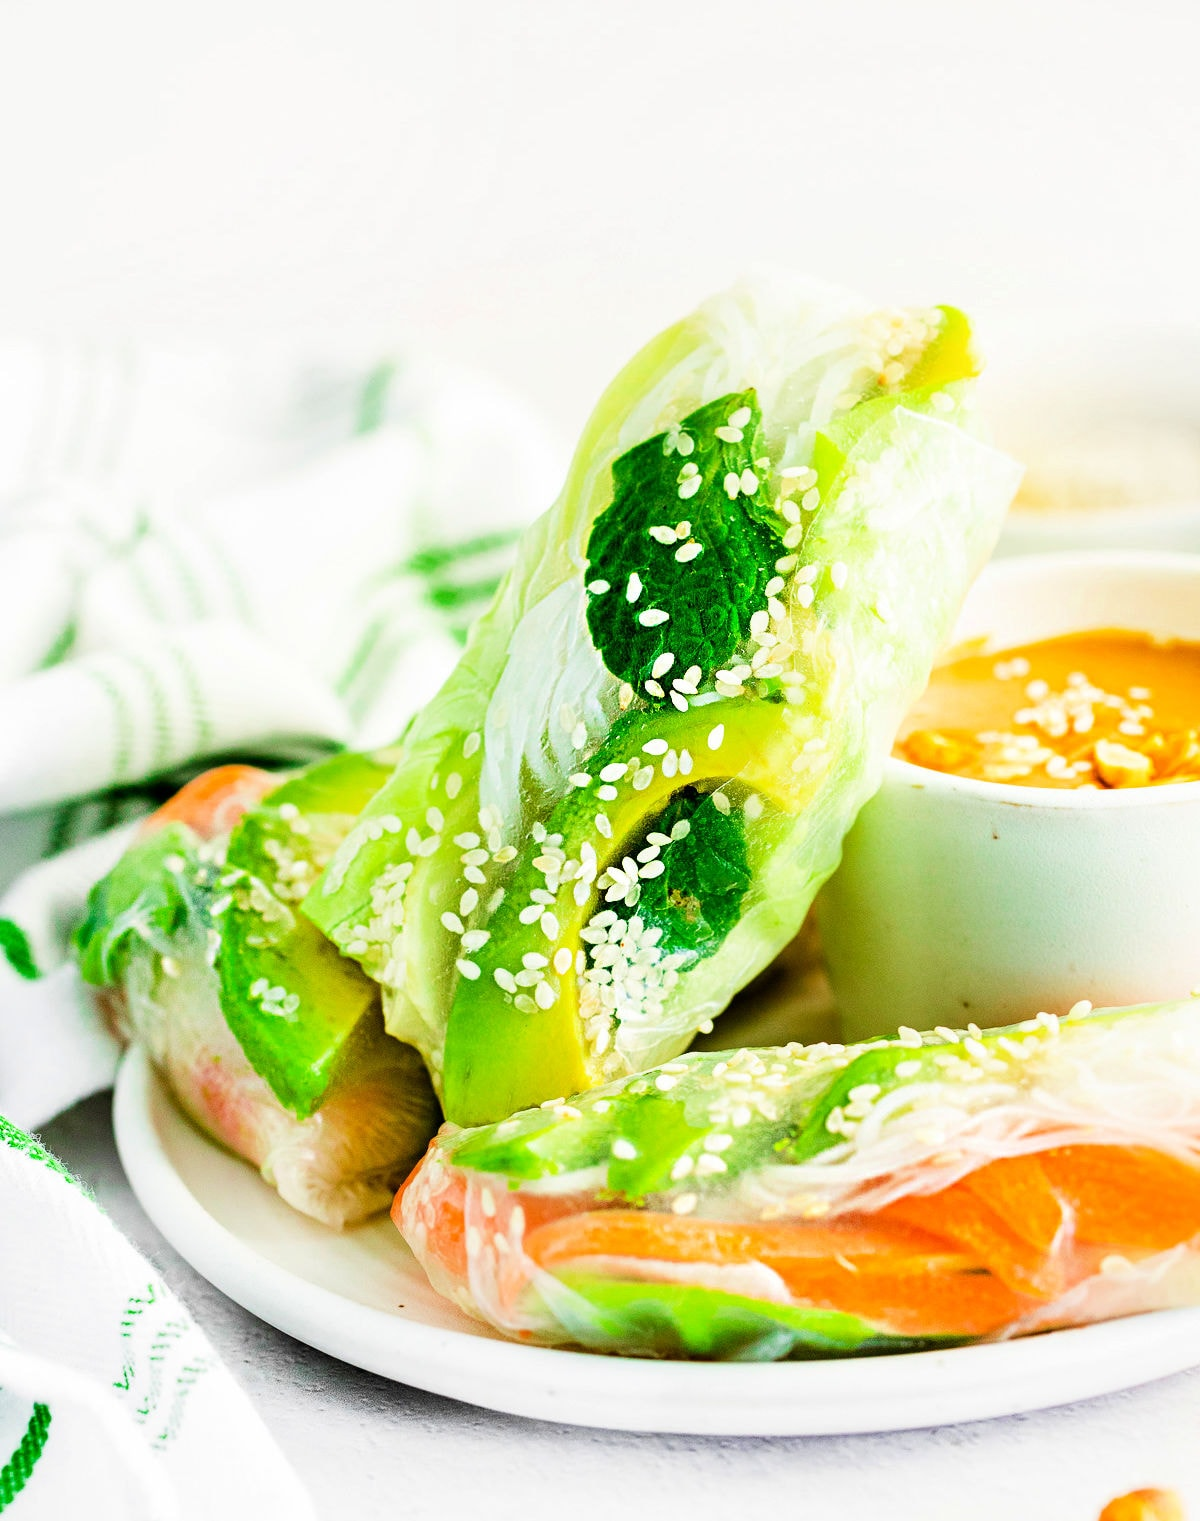 three summer rolls on white plate with peanut dipping sauce.